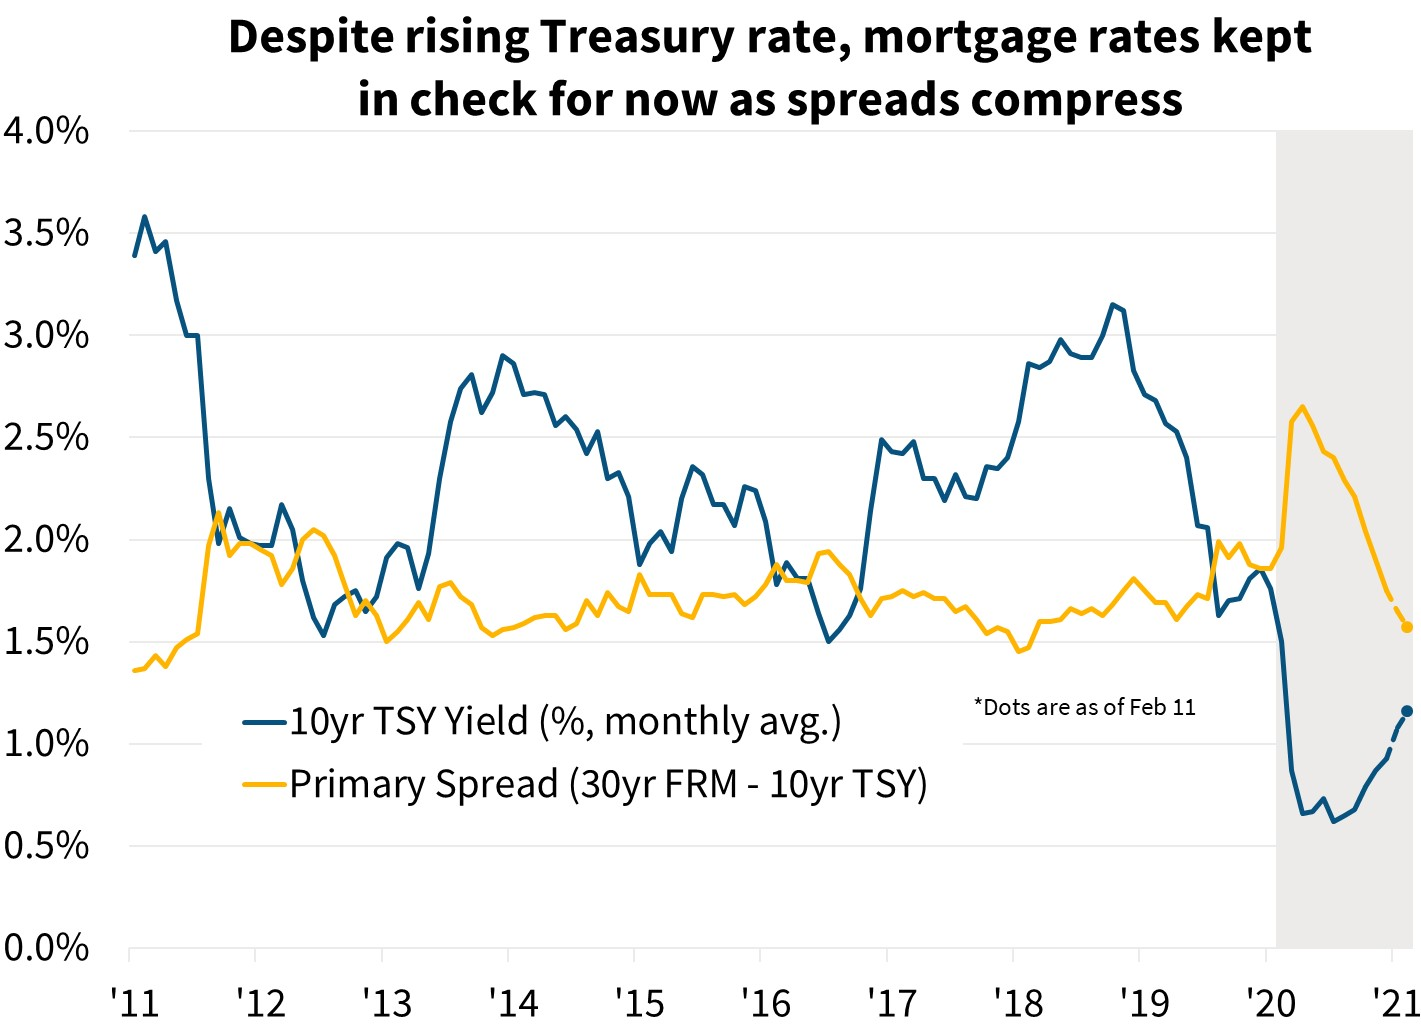 Despite rising Treasury rate mortgage rates kept in check for now as spreads compress